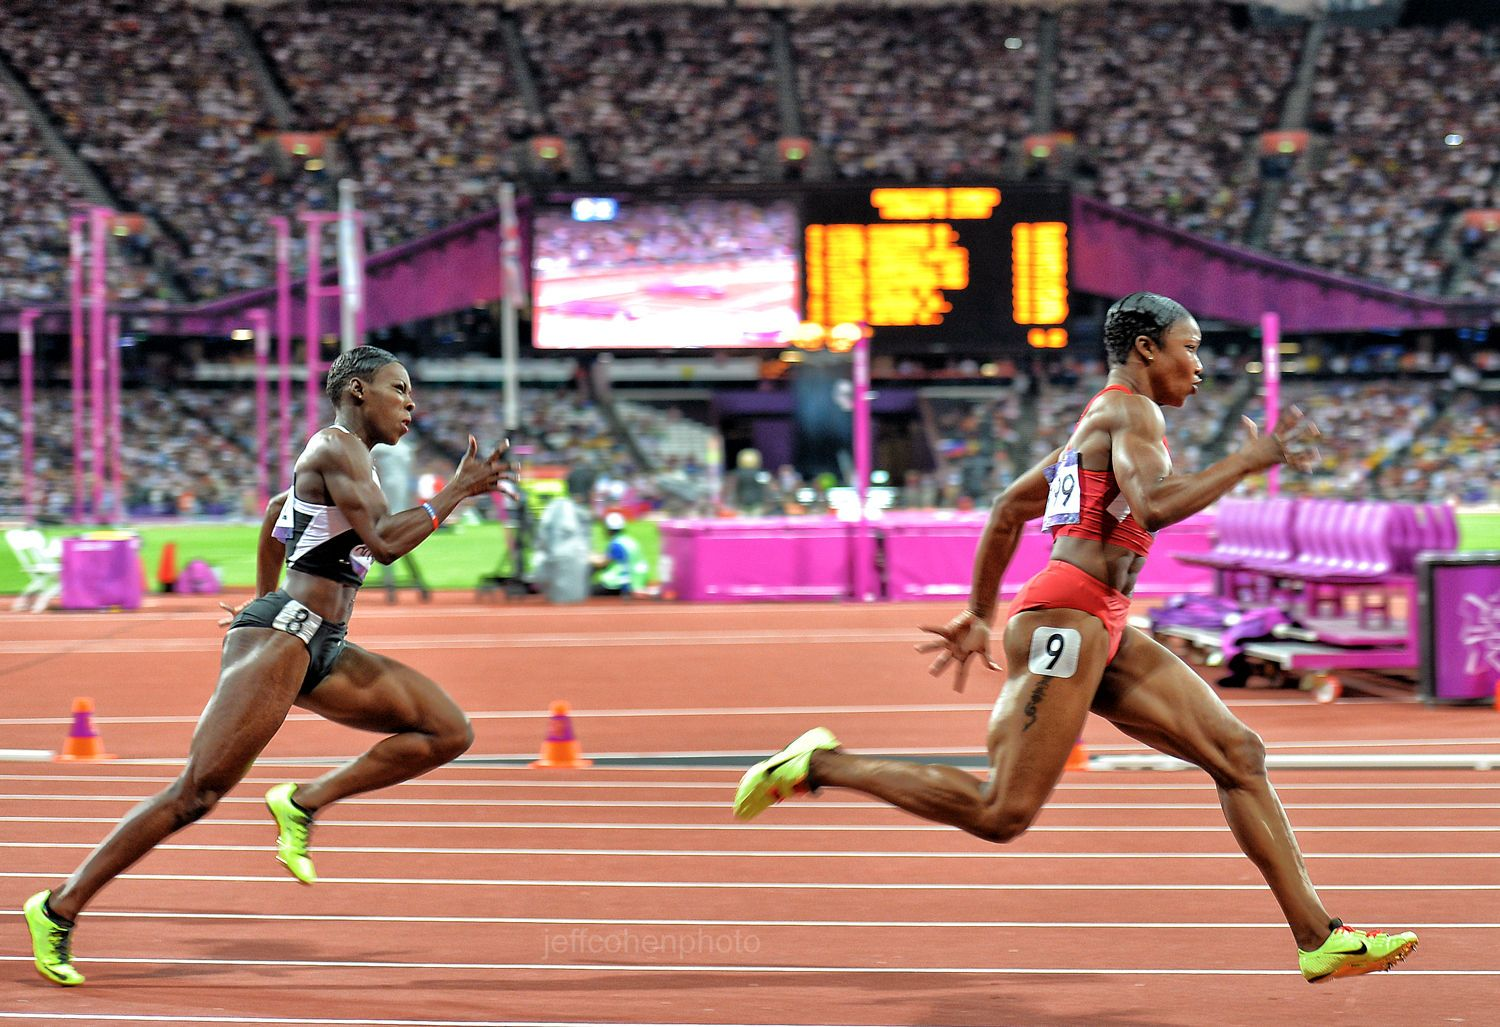 1london2012_jeter_ahoure_200m_final_jeff_cohen_photo_web.jpg